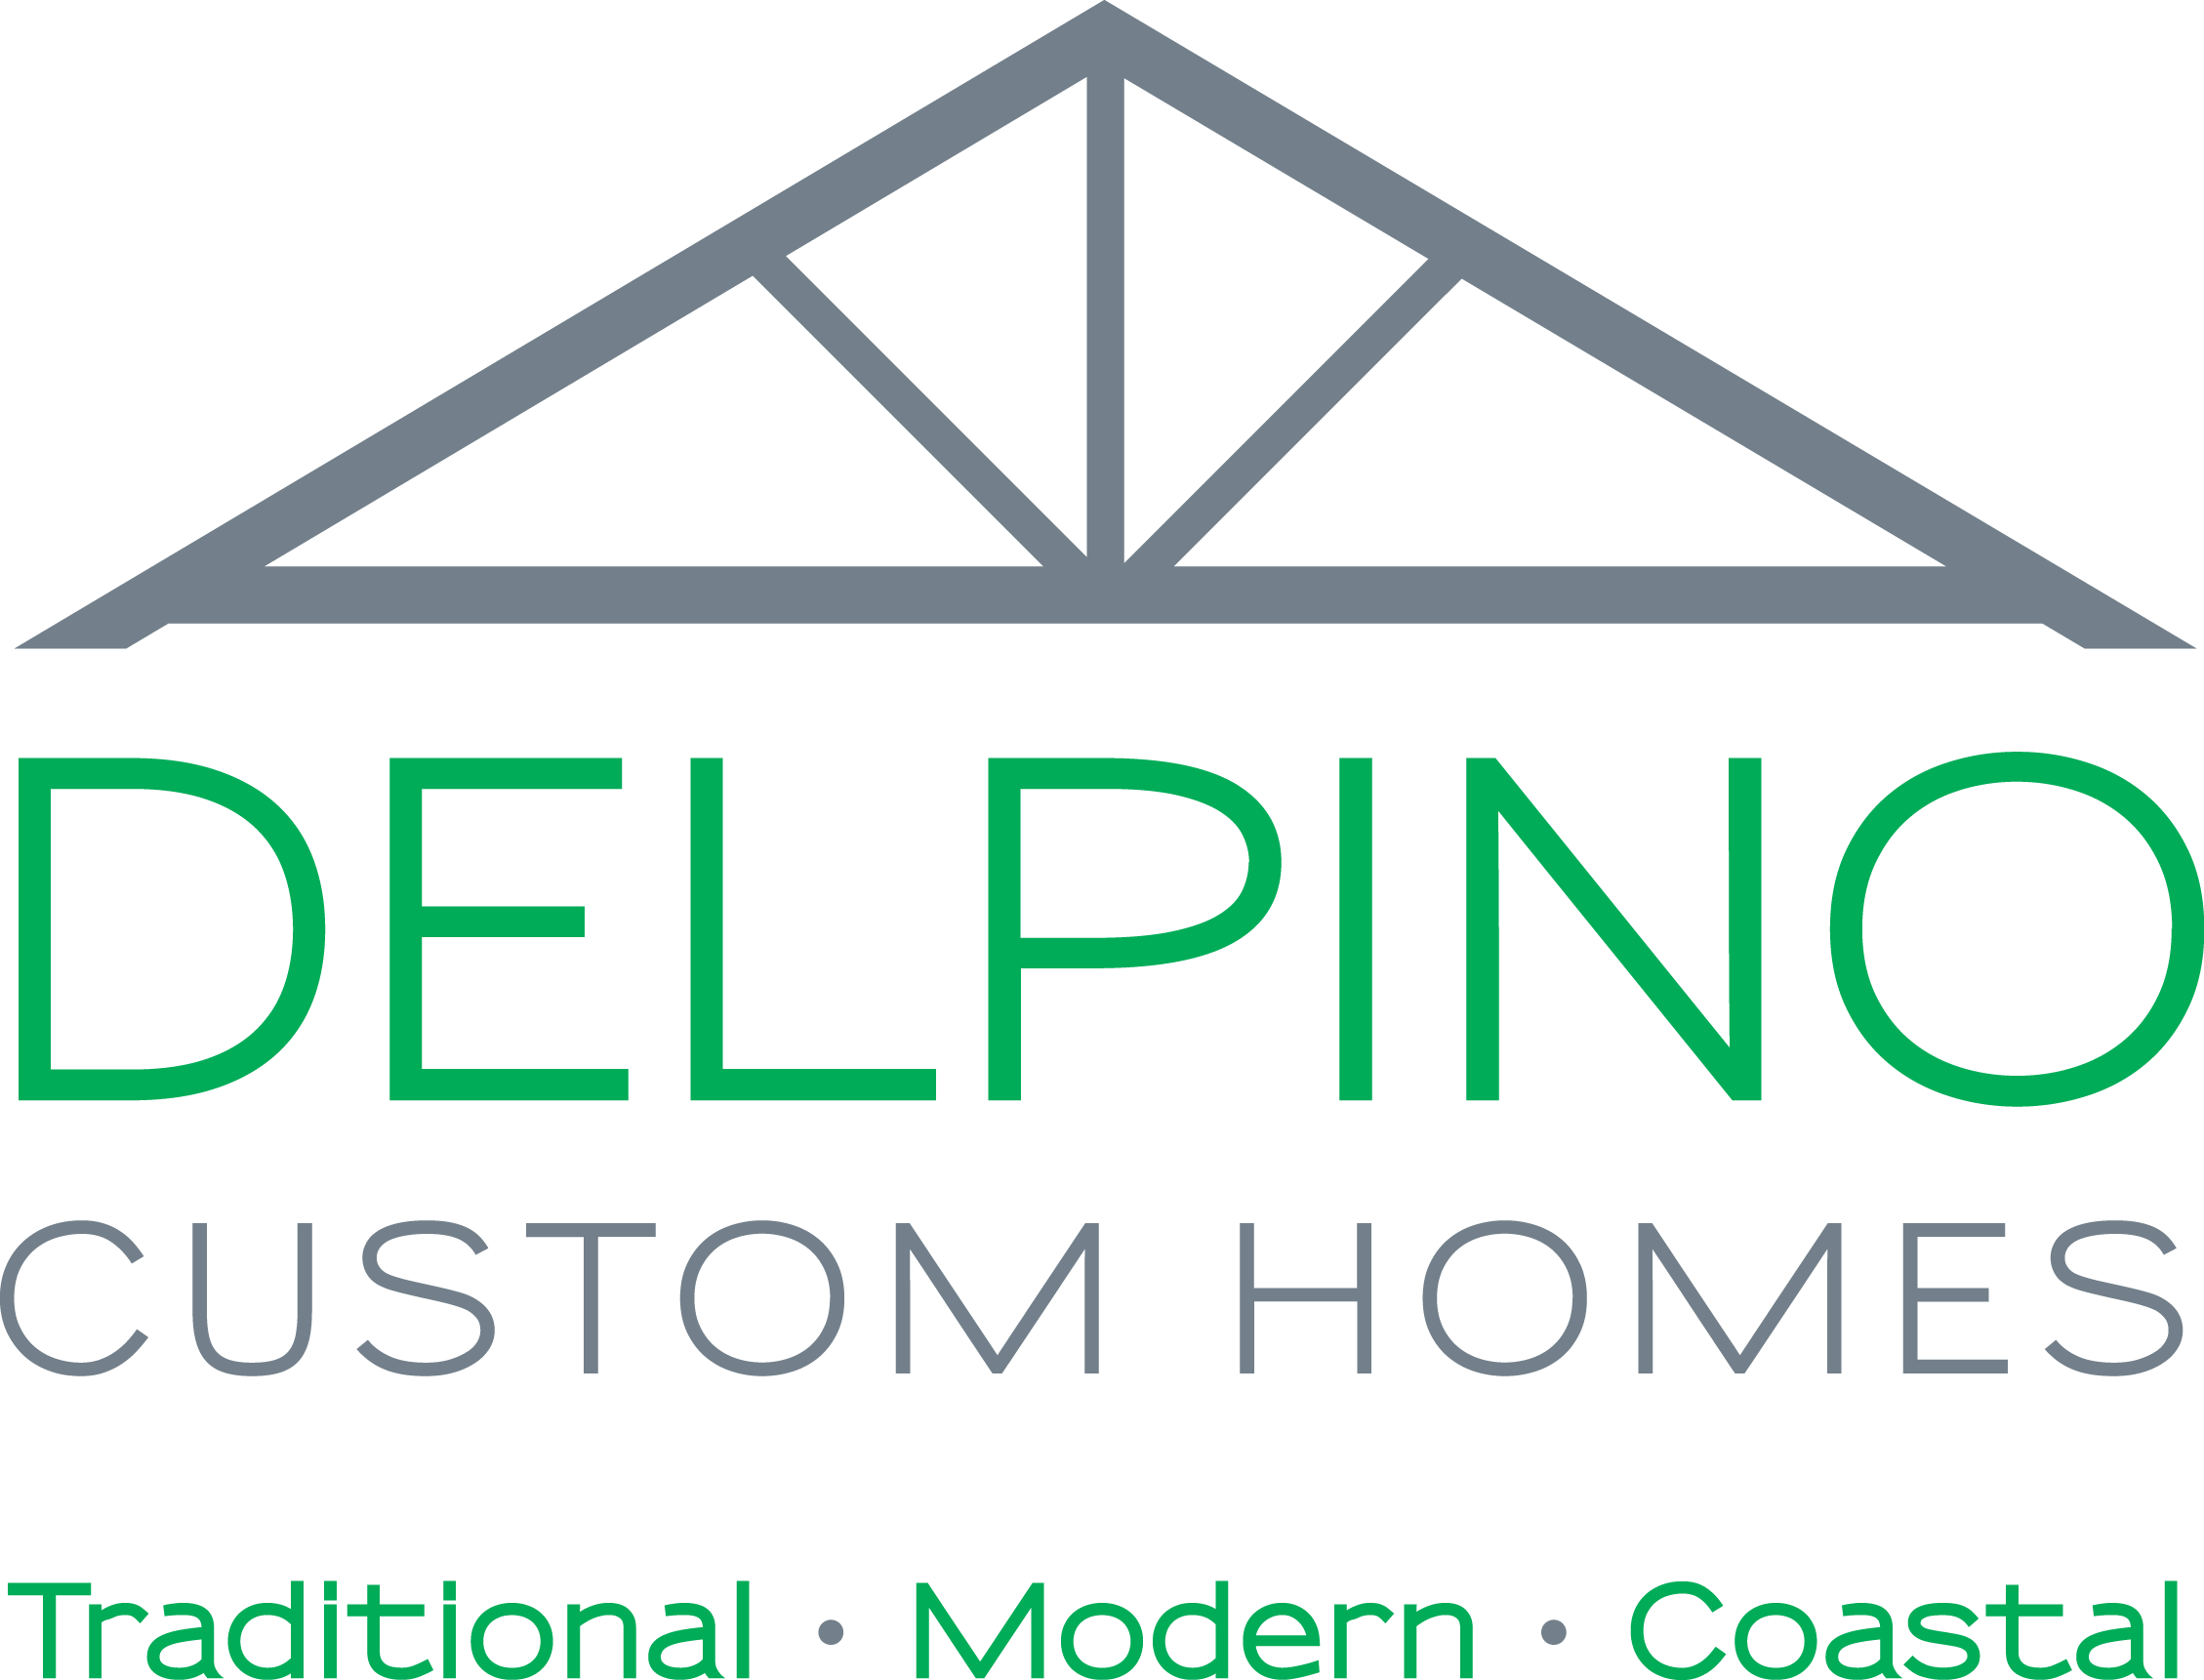 Delpino Custom Homes